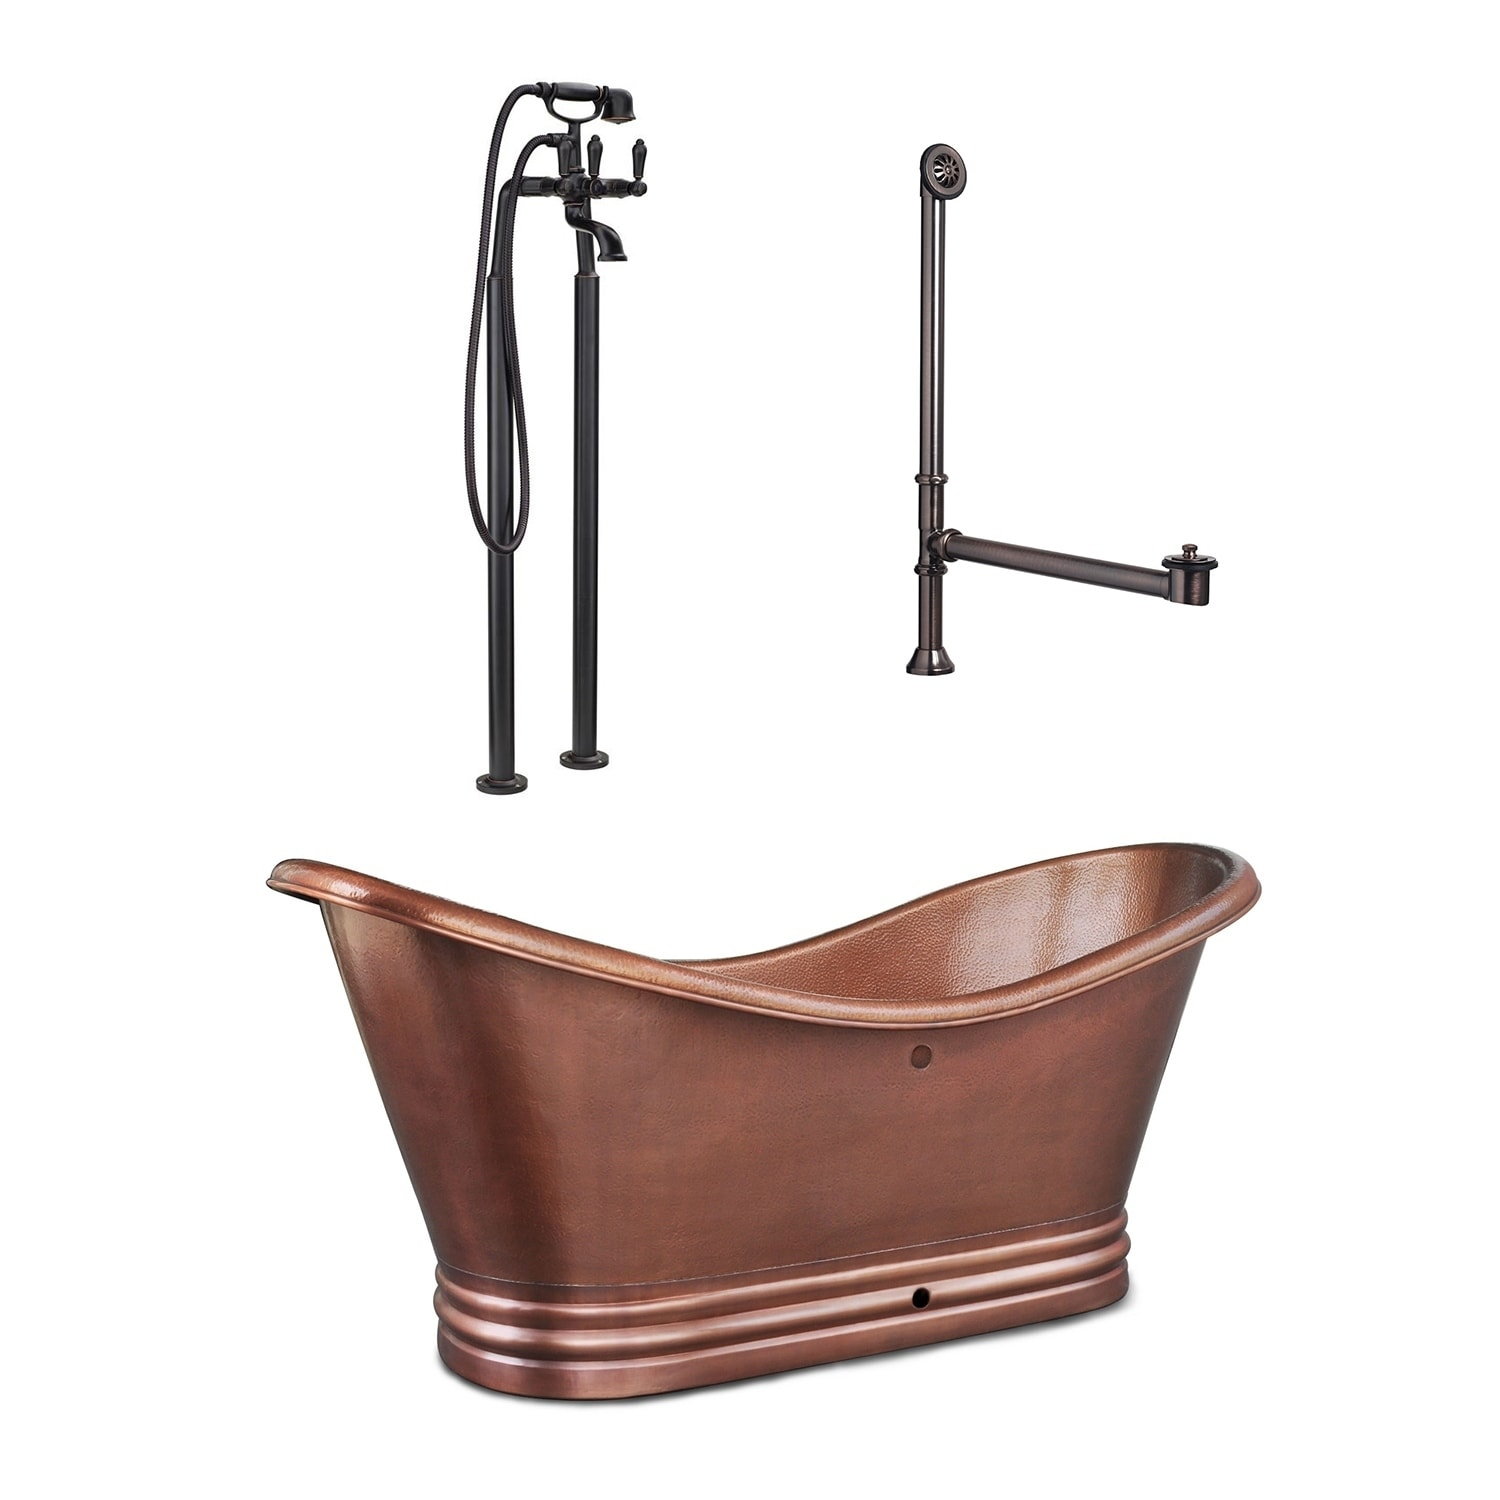 Shop Euclid 6 Ft All In One Solid Copper Freestanding Bathtub Kit With Pfister Faucet And Drain And Overflow In Antique Copper On Sale Overstock 28153217